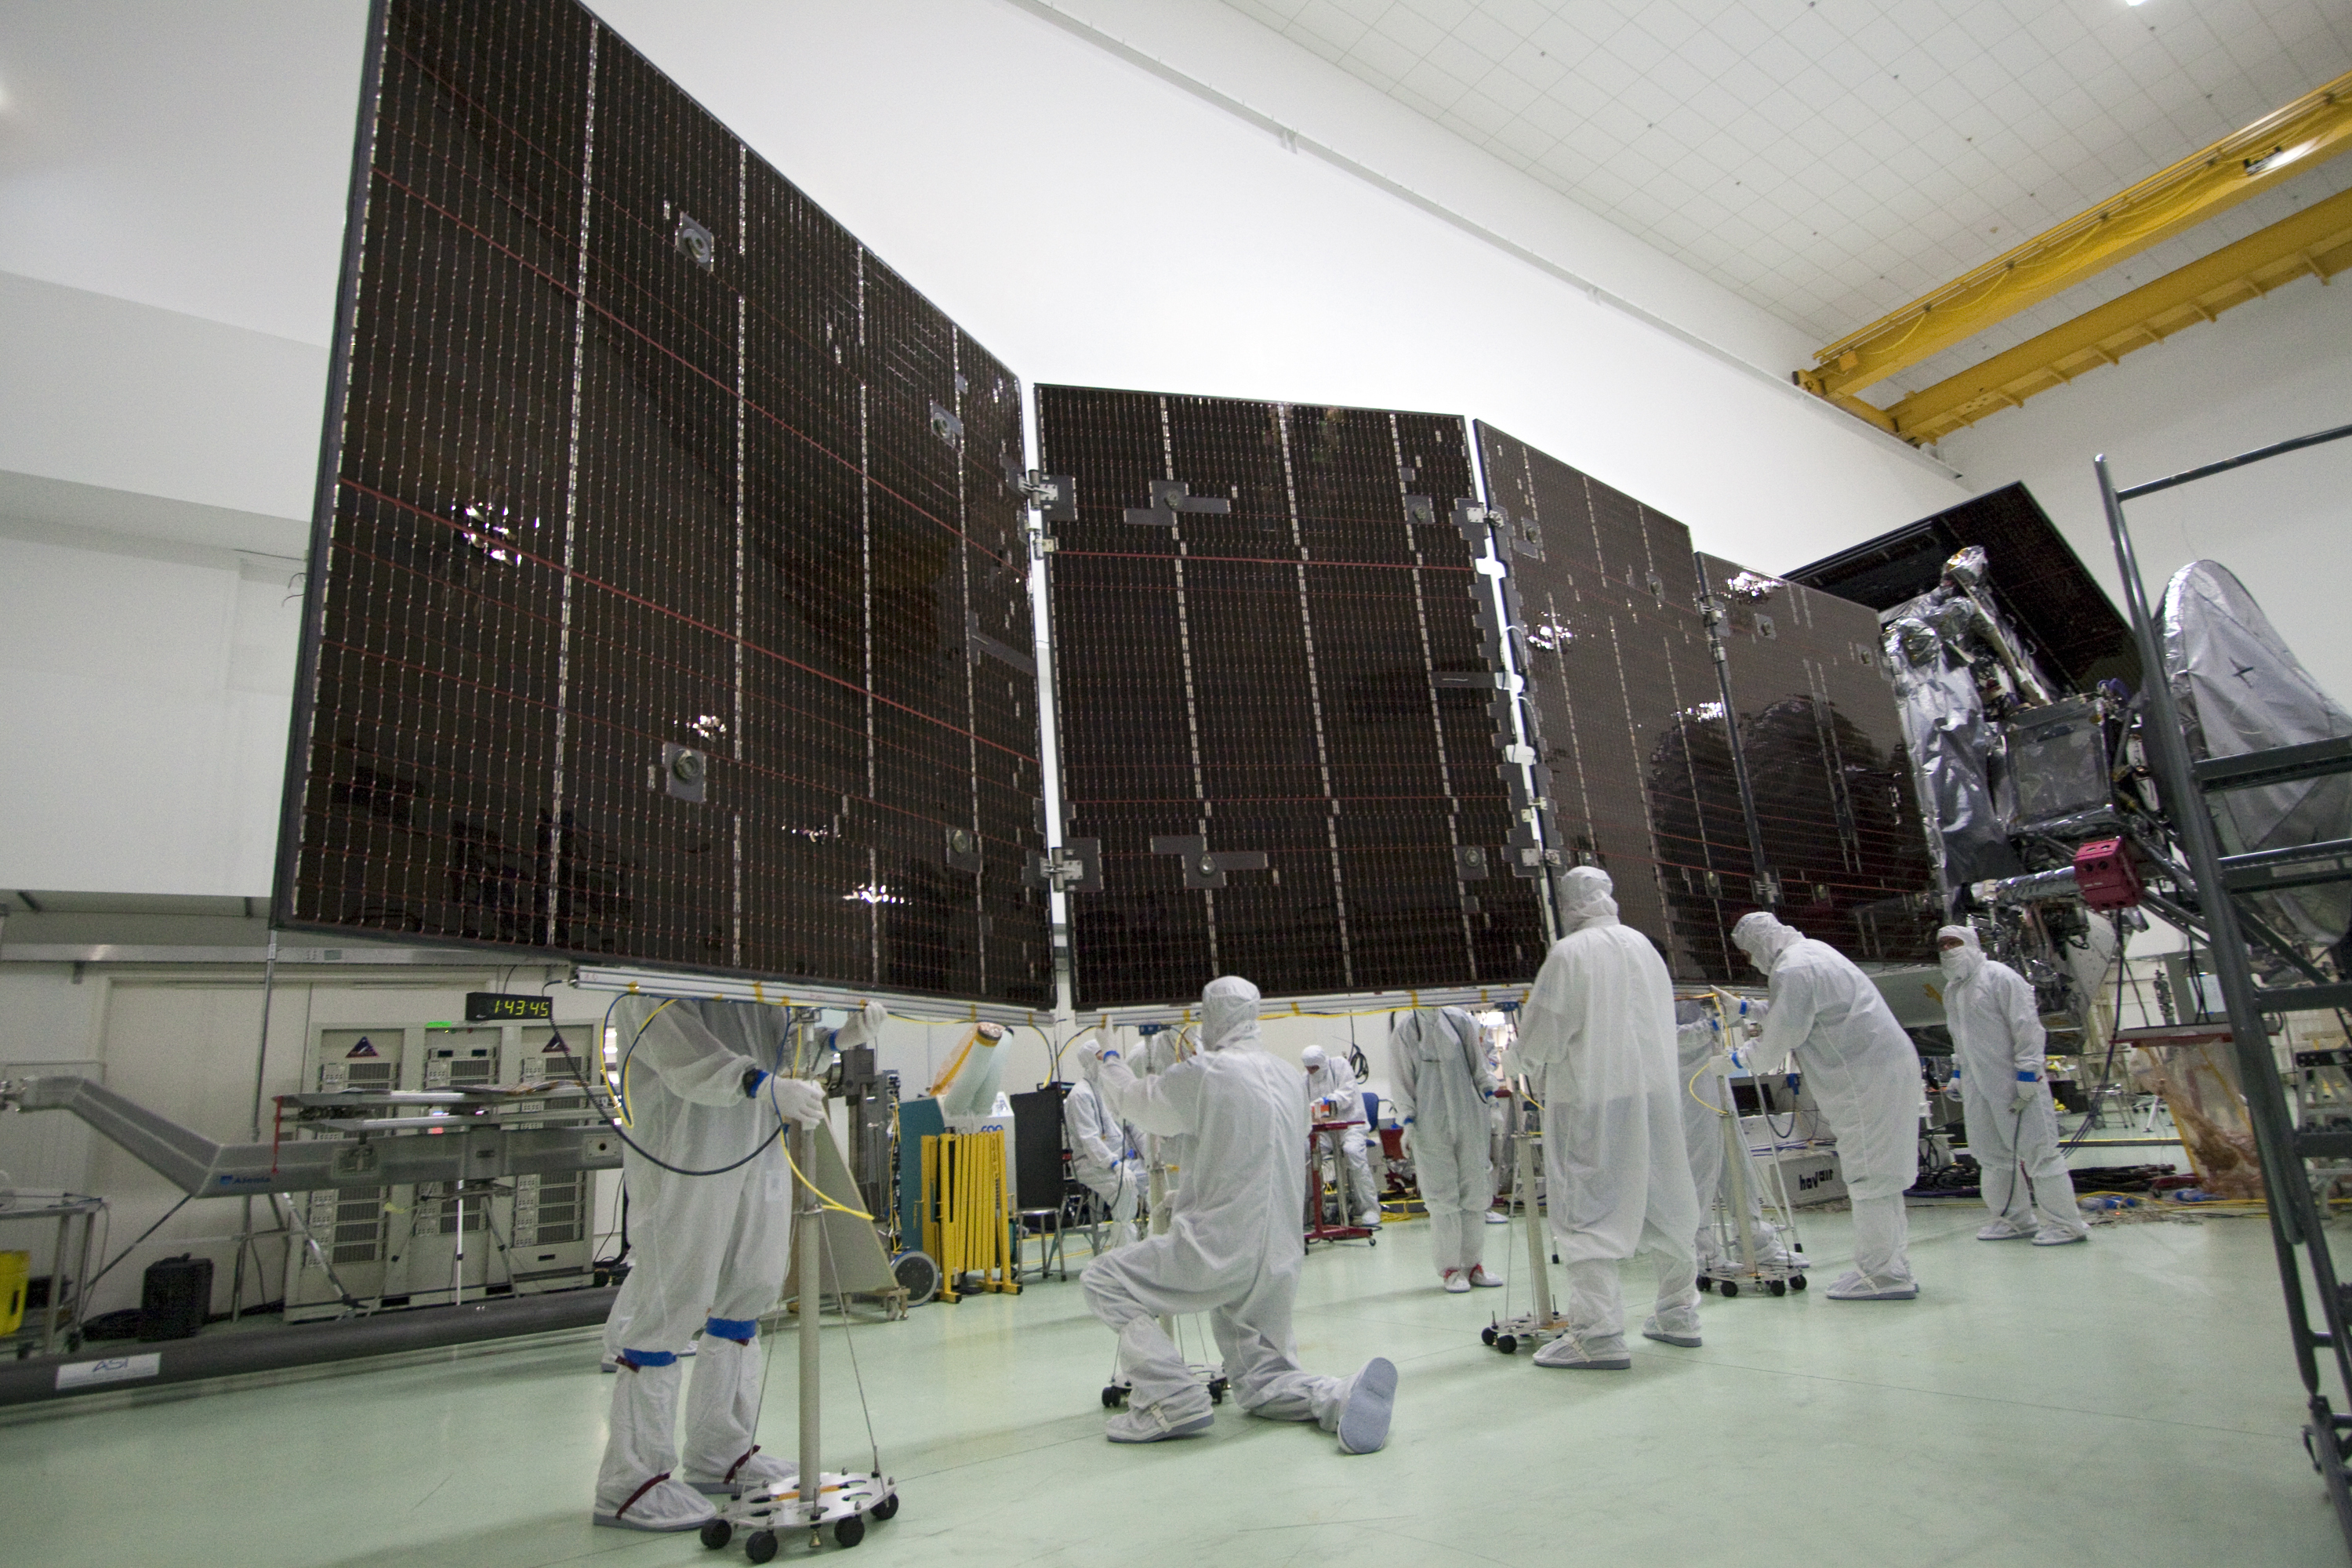 NASA's Juno spacecraft being prepped for launch